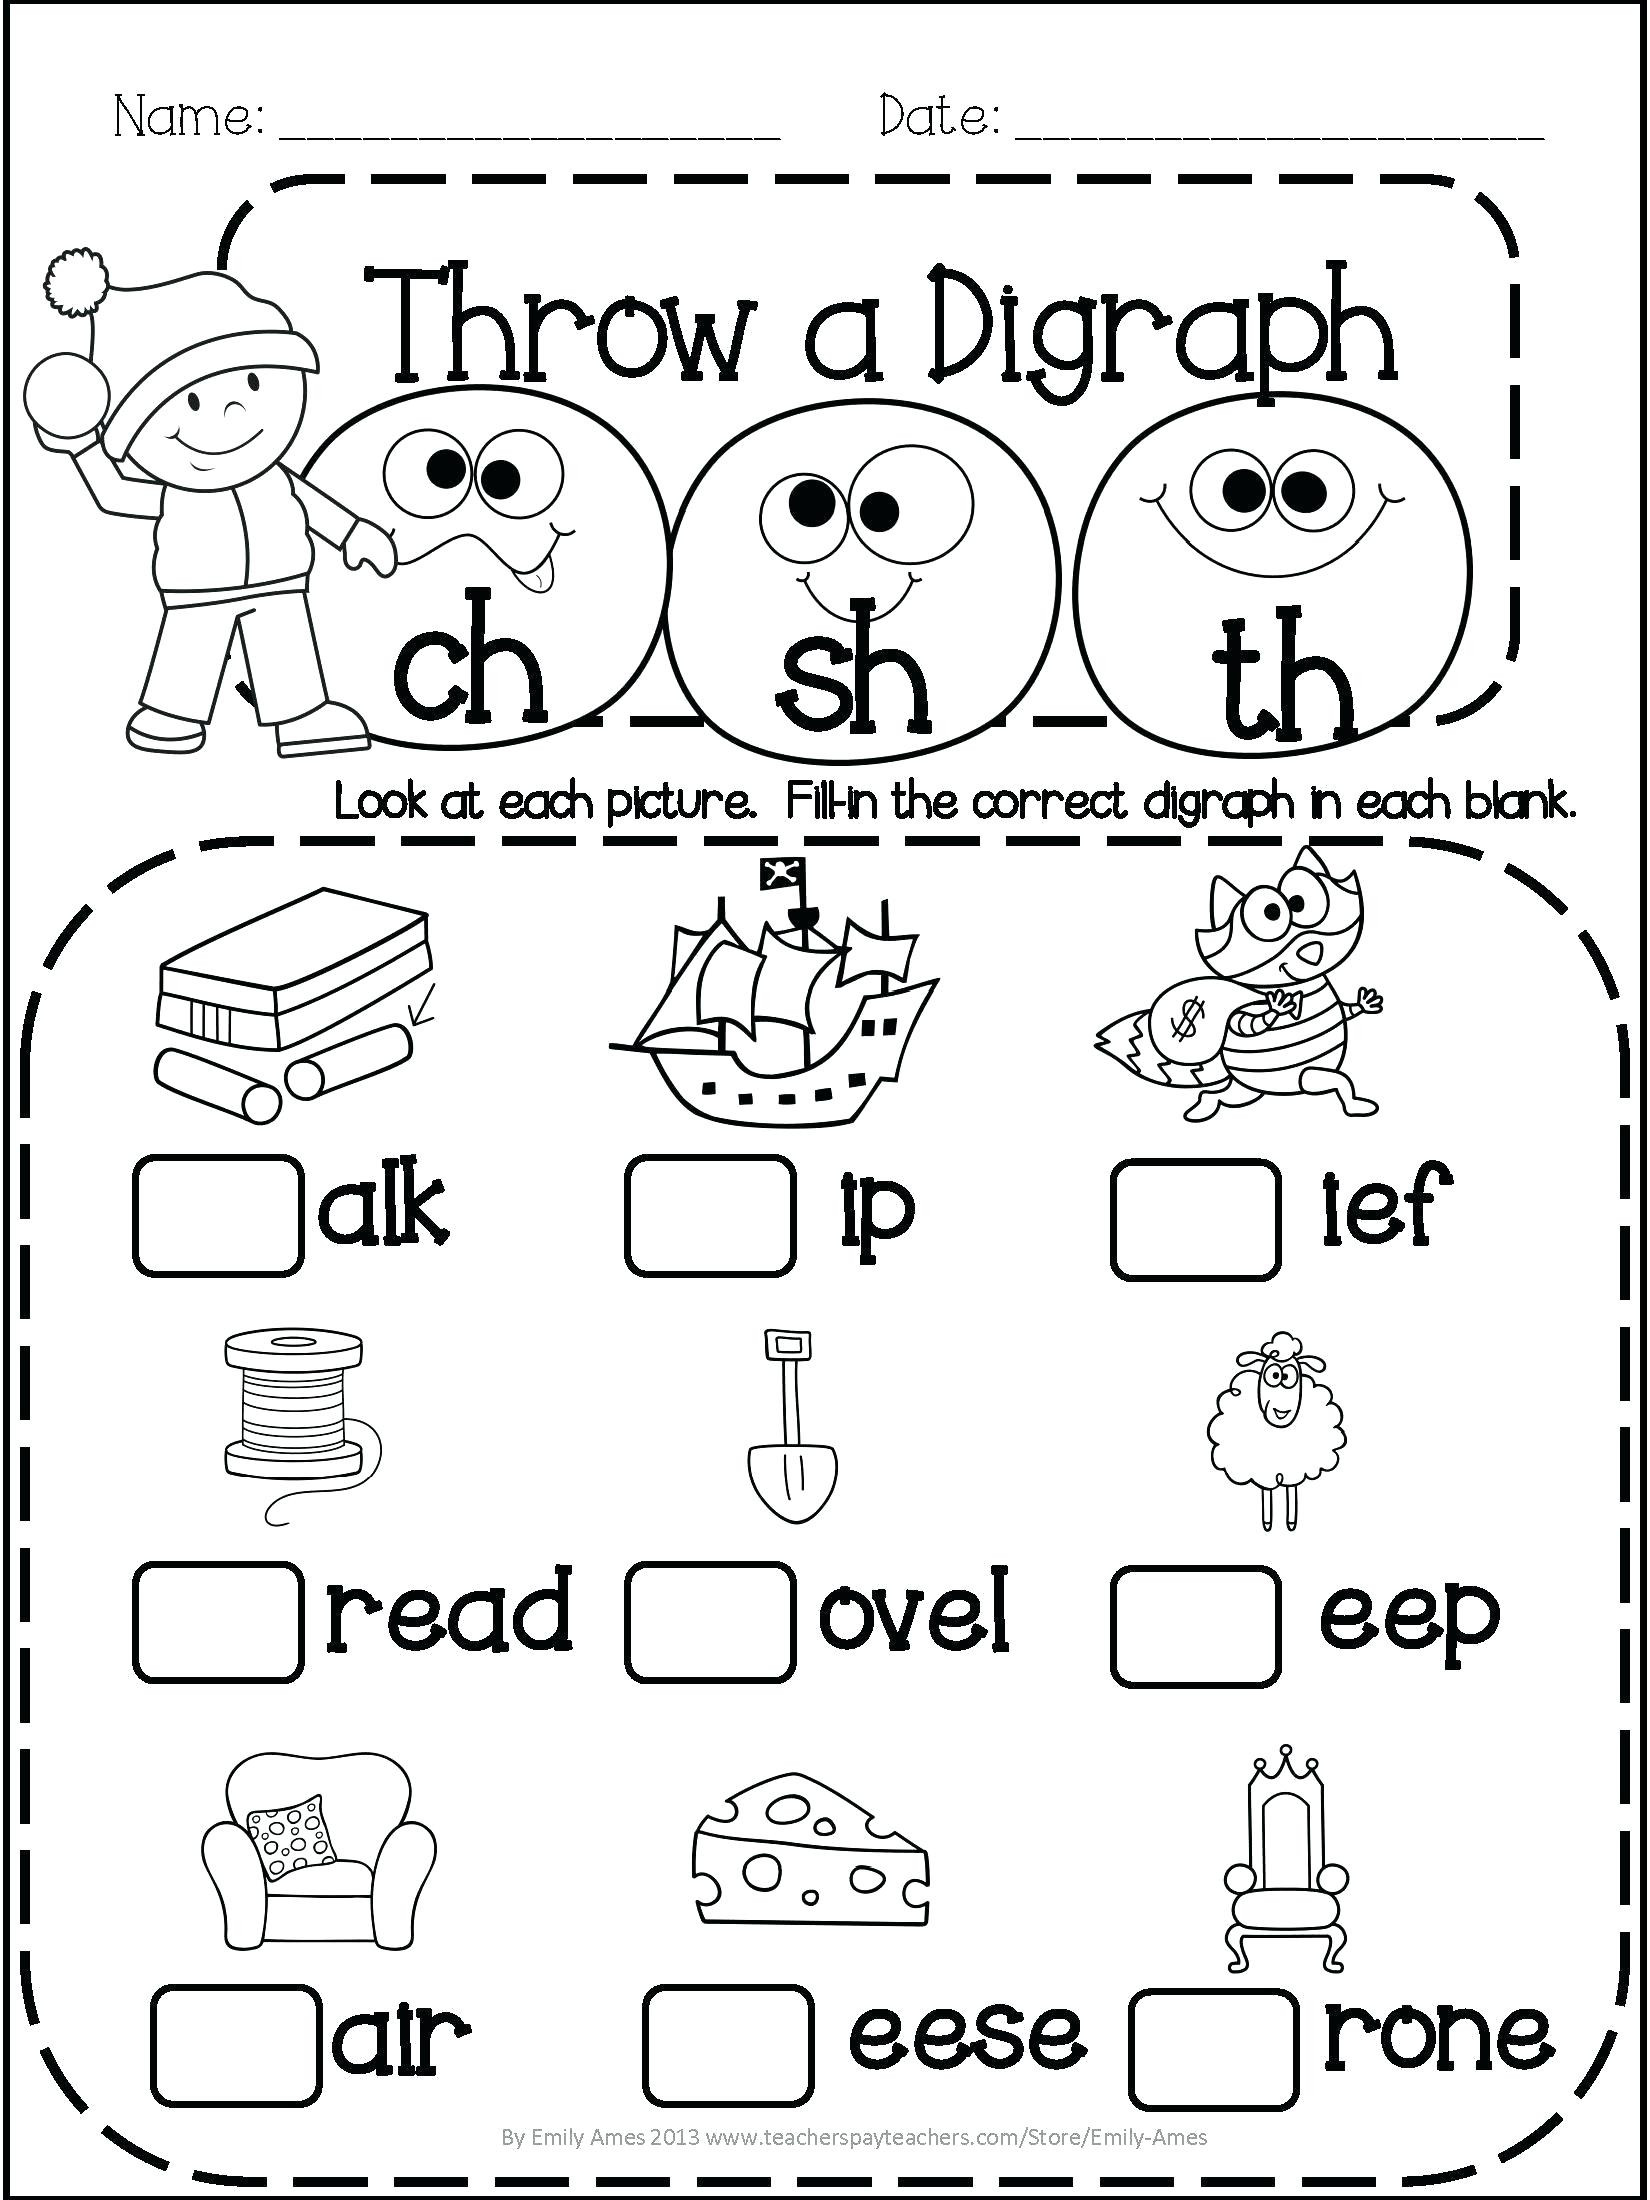 1st Grade Comprehension Worksheets Free Generationinitiative Free Printable Math Worksheets 5th